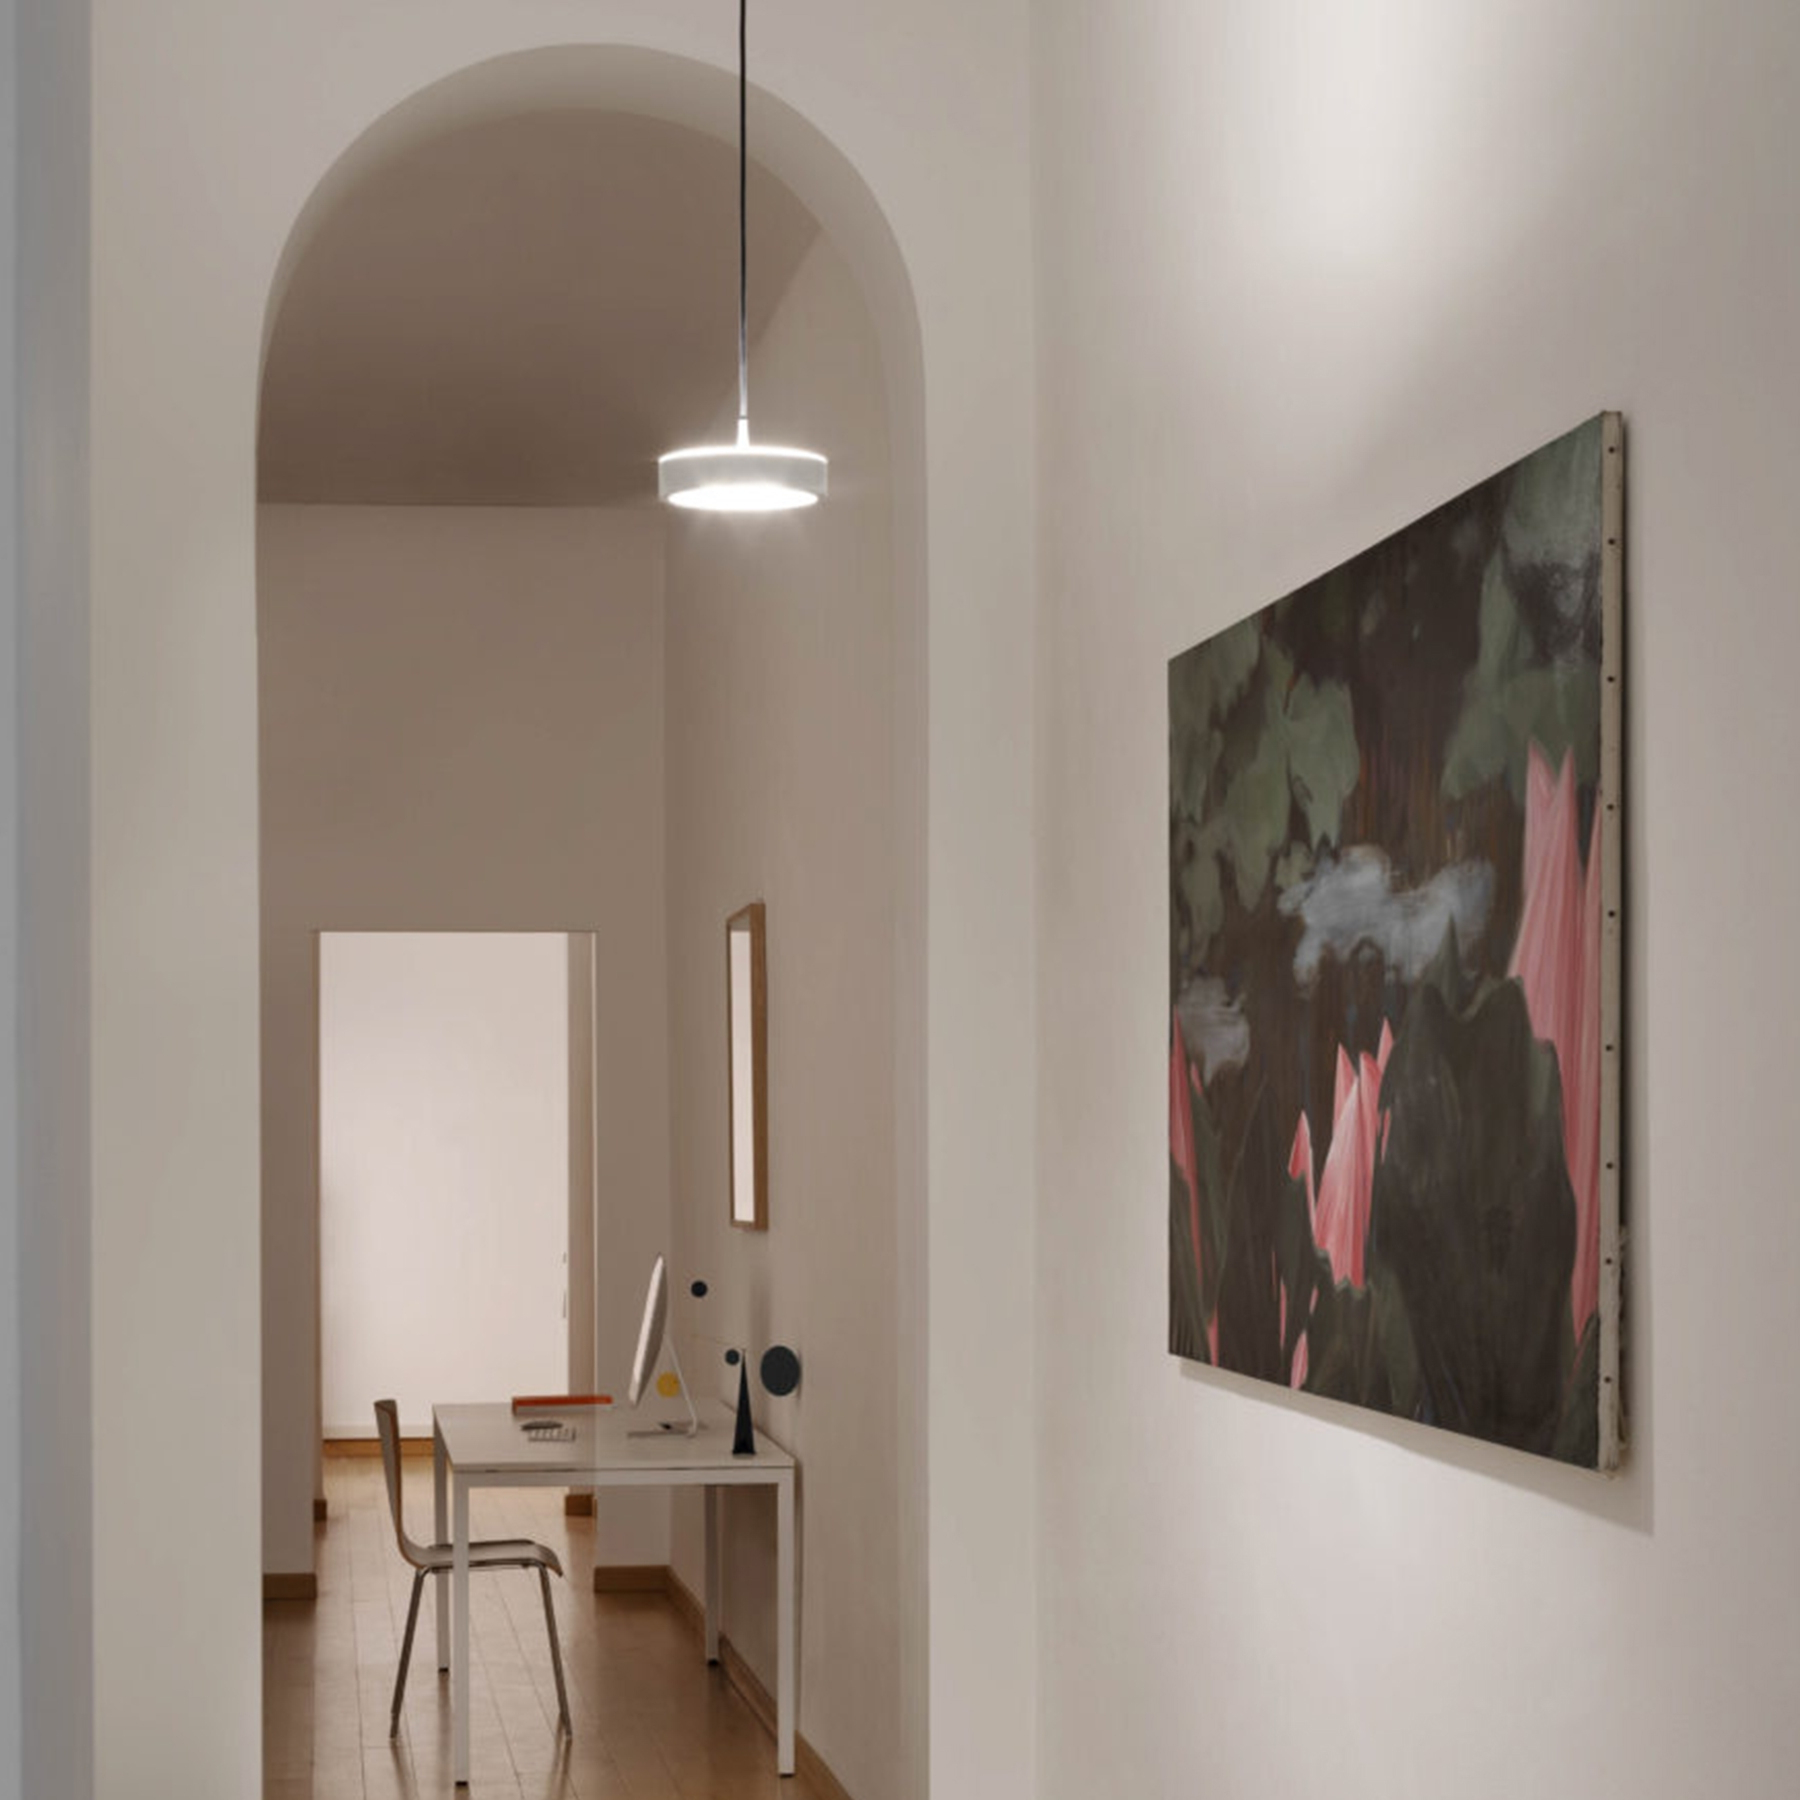 Most Popular Firmamento Milano Tambù Pendant Lamp – Tattahome With Regard To Blended Fabric Artifice Ii Wall Hangings (View 16 of 20)